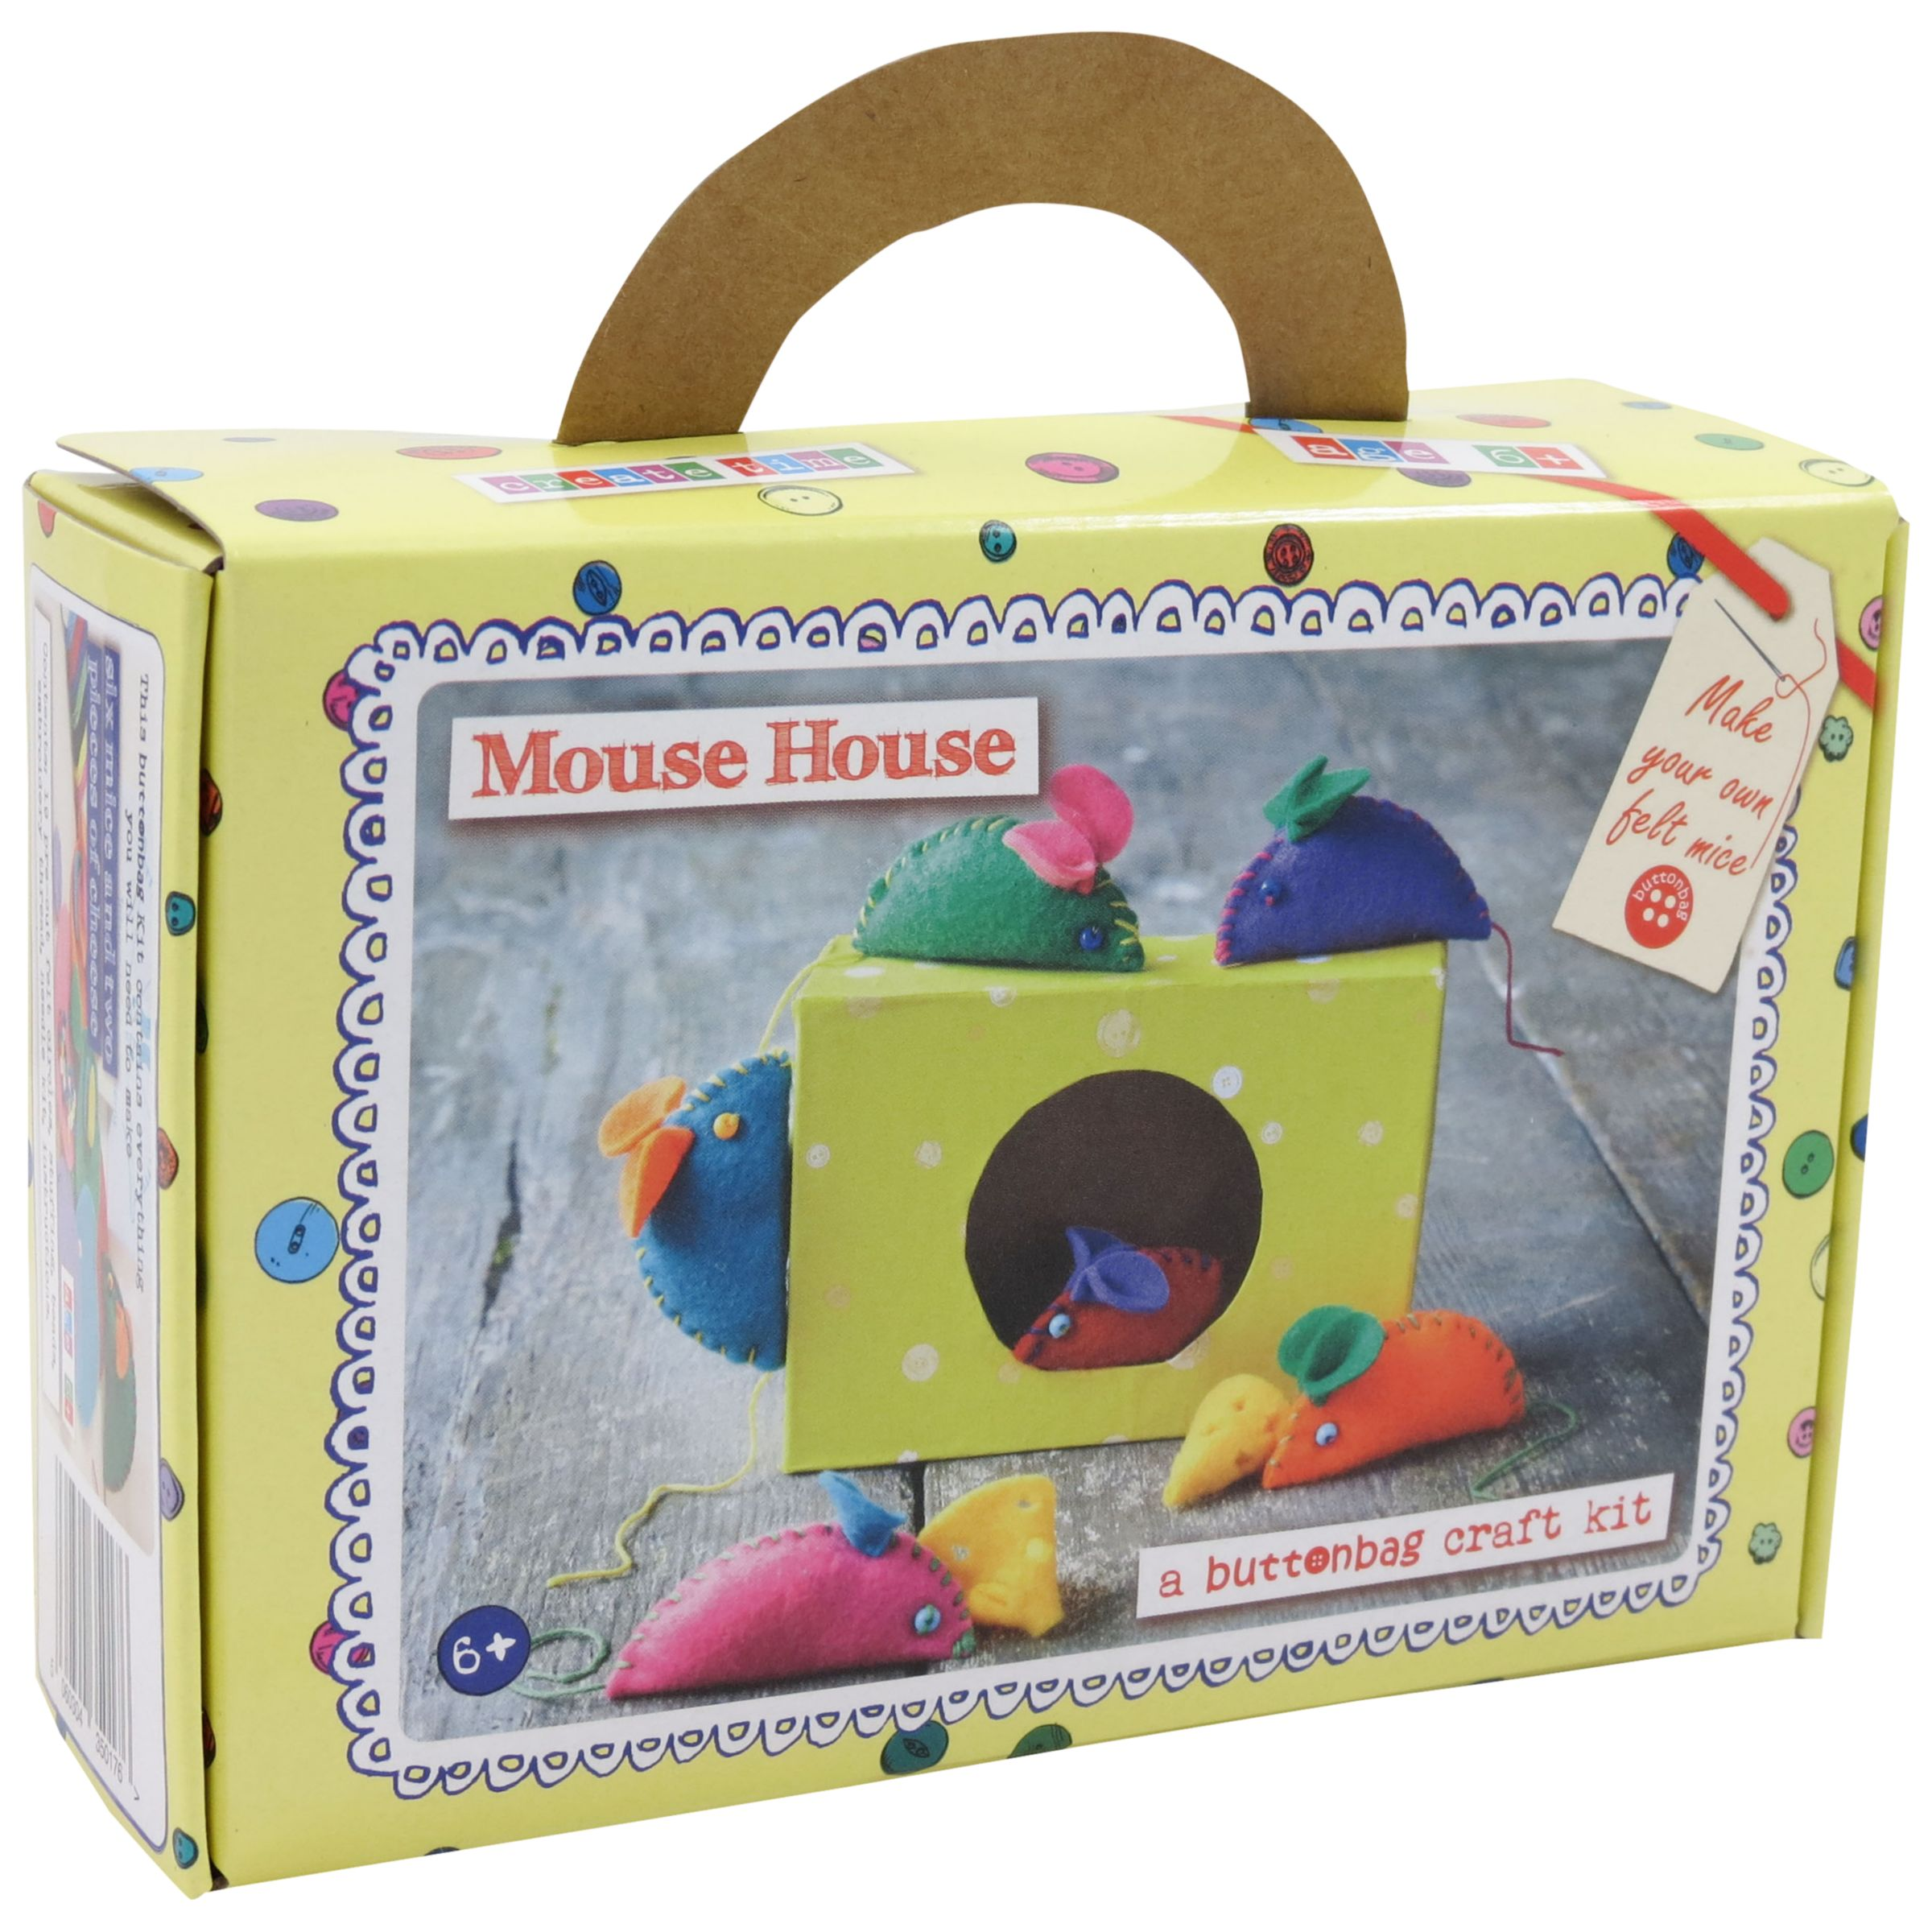 Buttonbag Buttonbag Mouse House Craft Kit